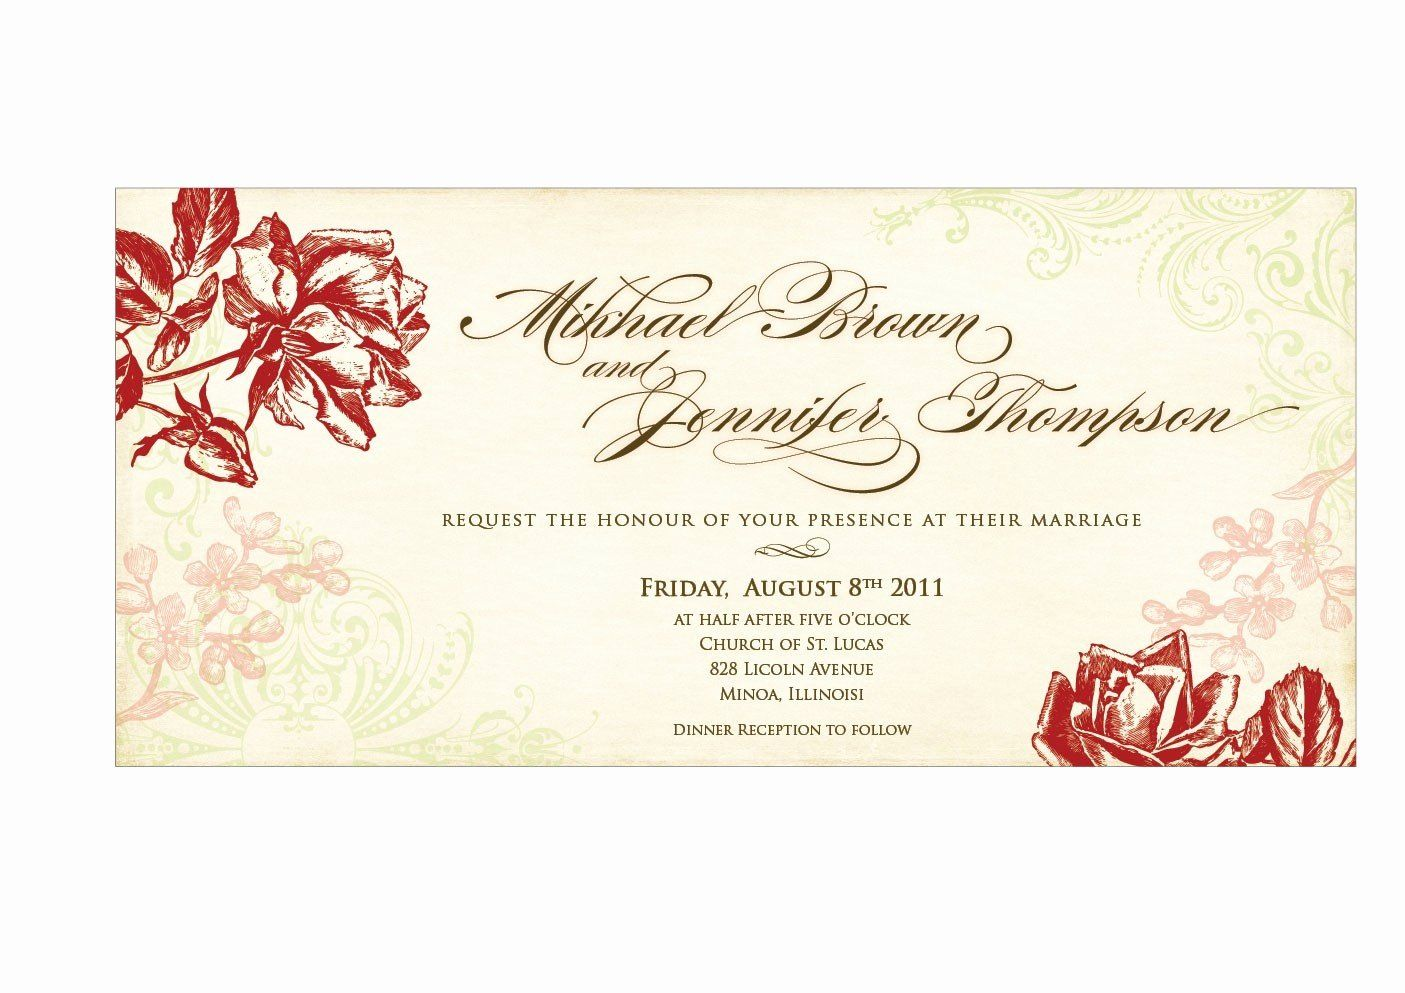 Email Wedding Invitation Template Best Of Email Wedding Invitation Templates Fre Wedding Invitation Templates Fun Wedding Invitations Email Wedding Invitations